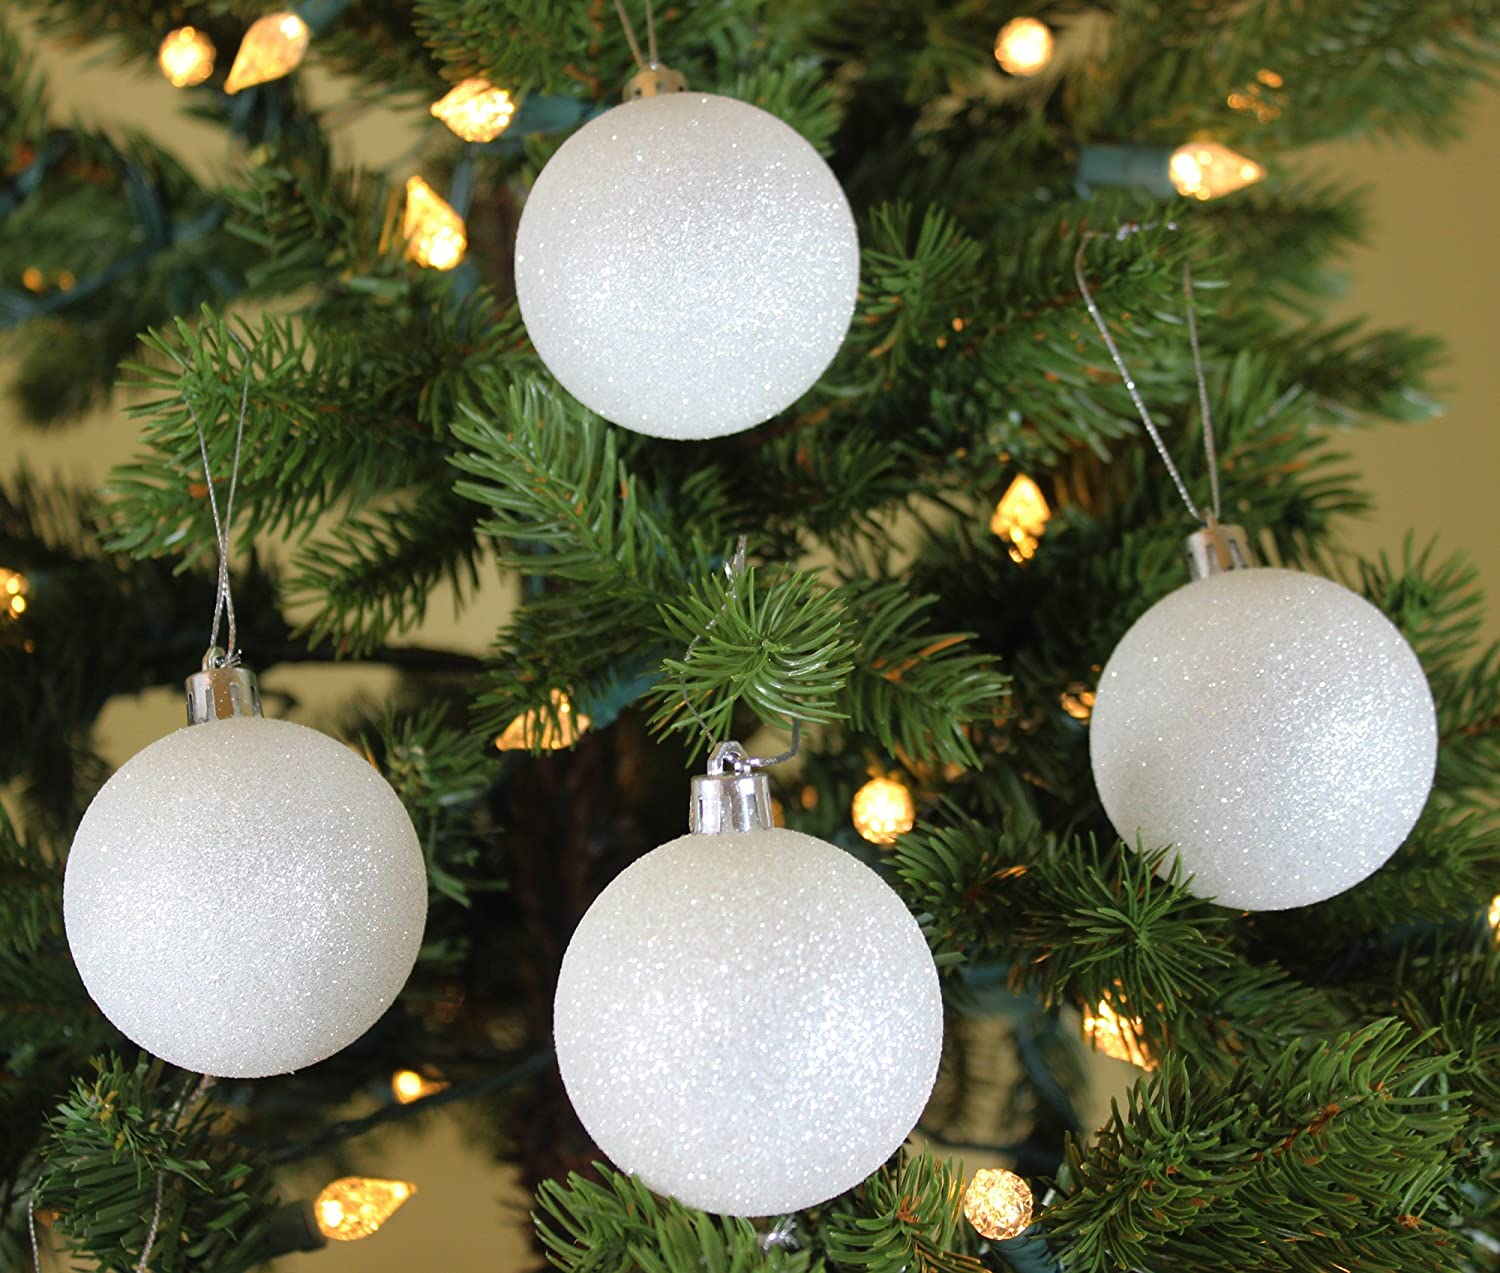 Sleetly Christmas Ball Ornaments, White Snowball, 2.36 inch, Set of 18